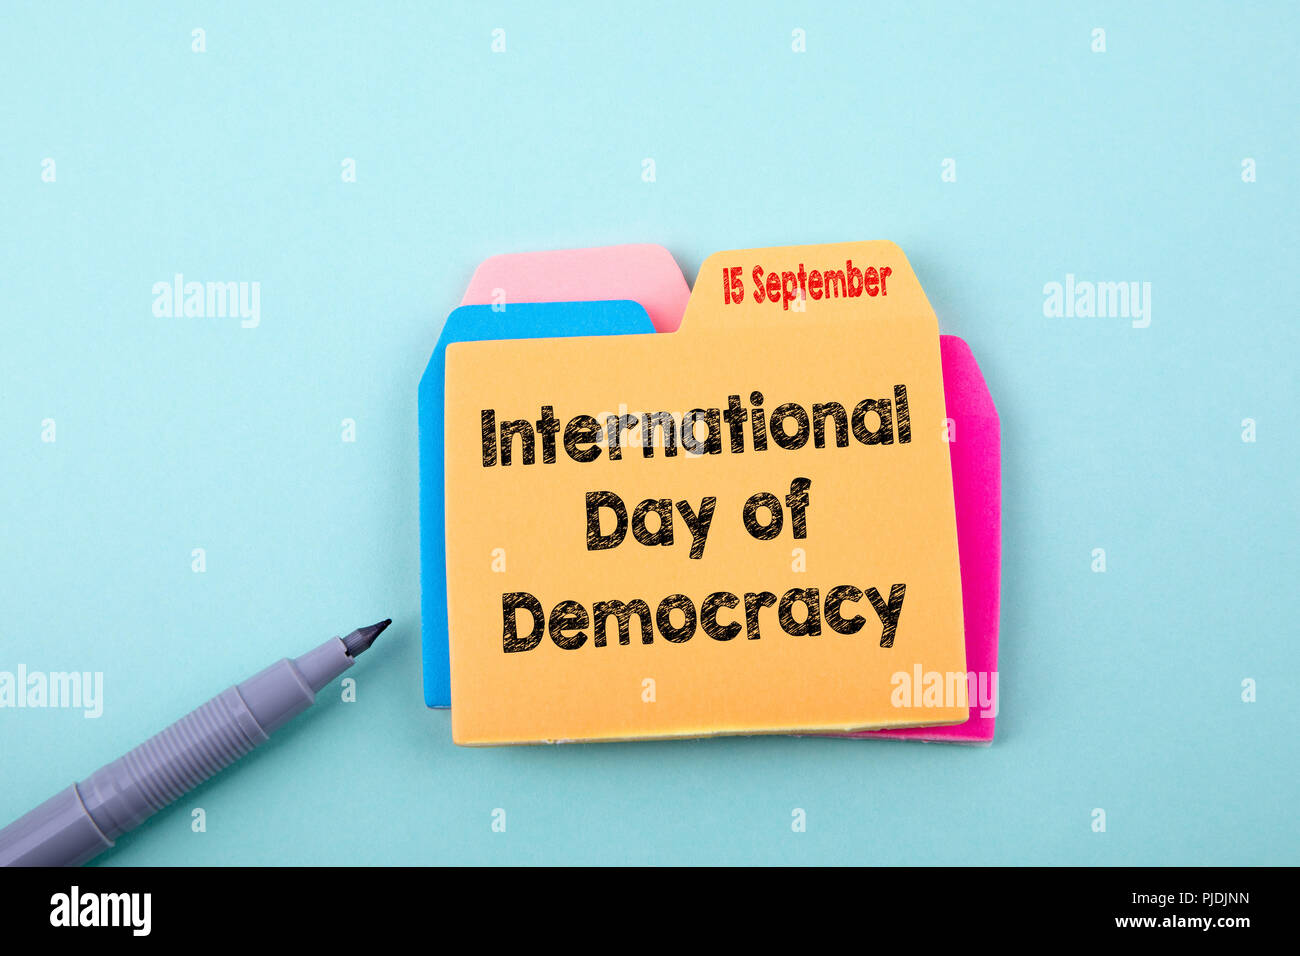 International Day of Democracy 15 September - Stock Image